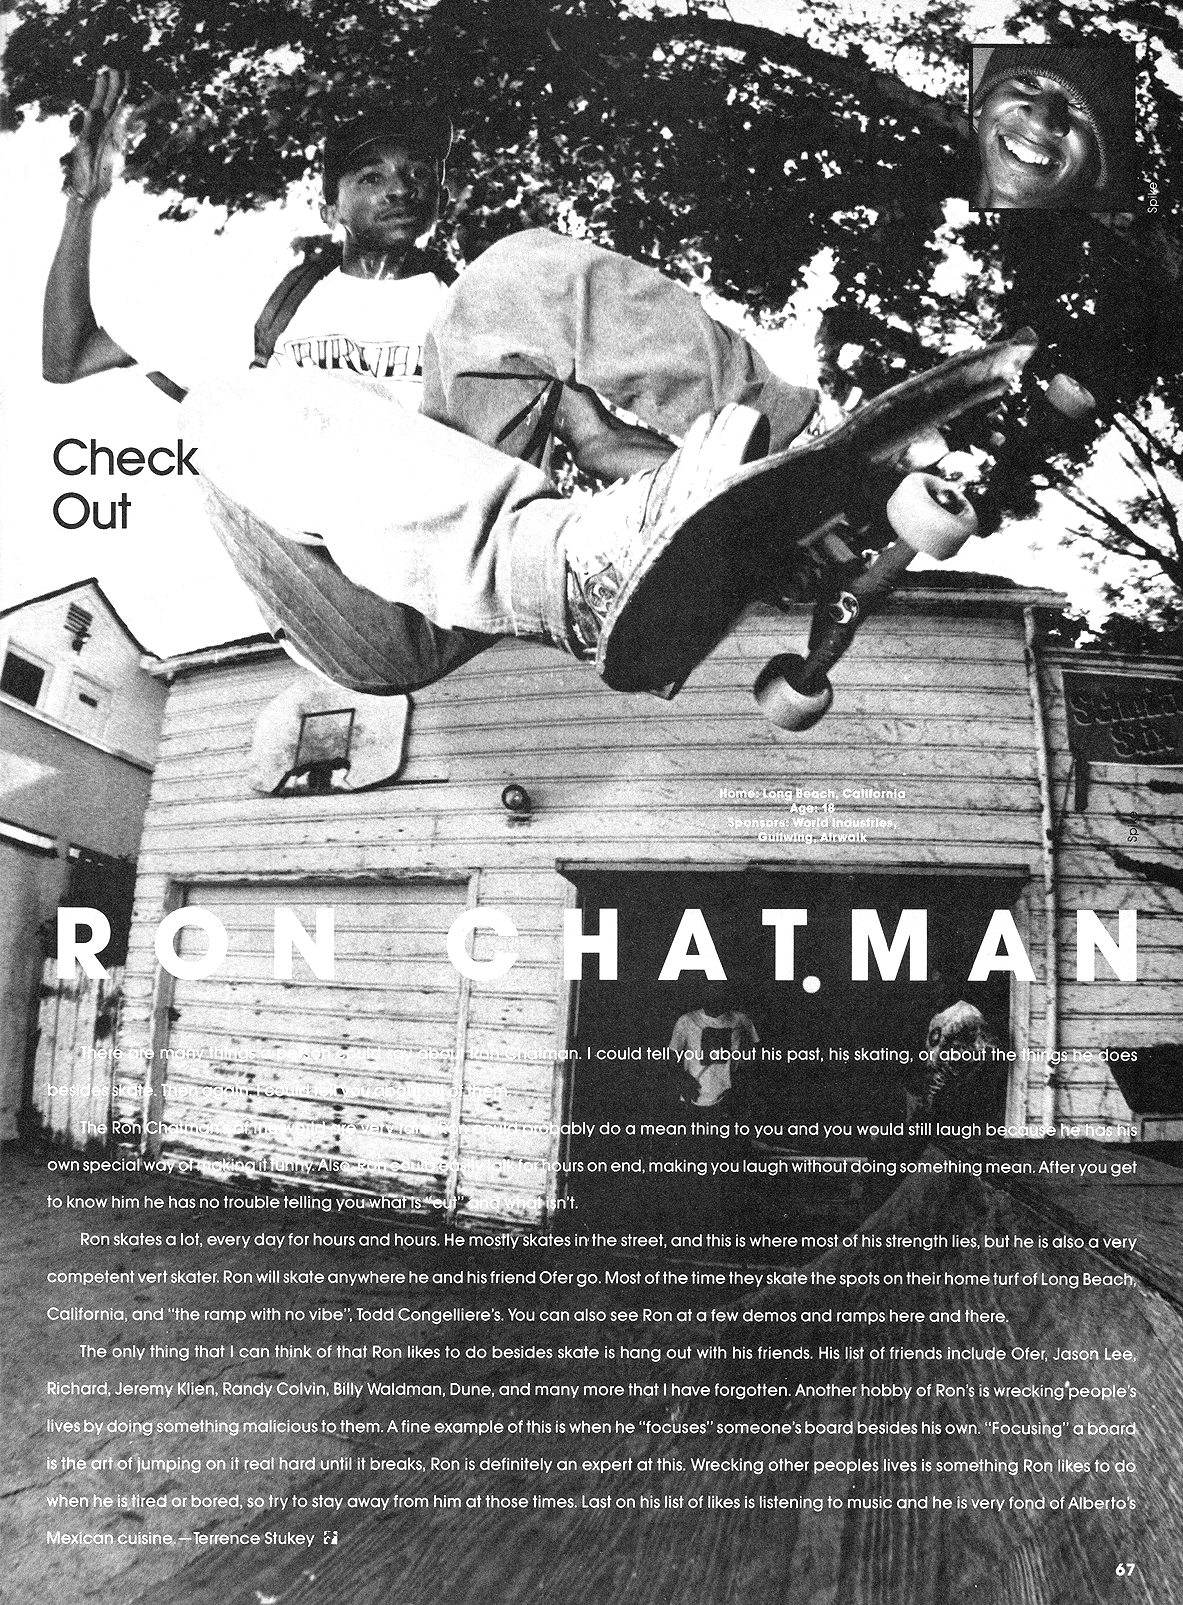 Ron-Chatman-Spike-april-90-8-4